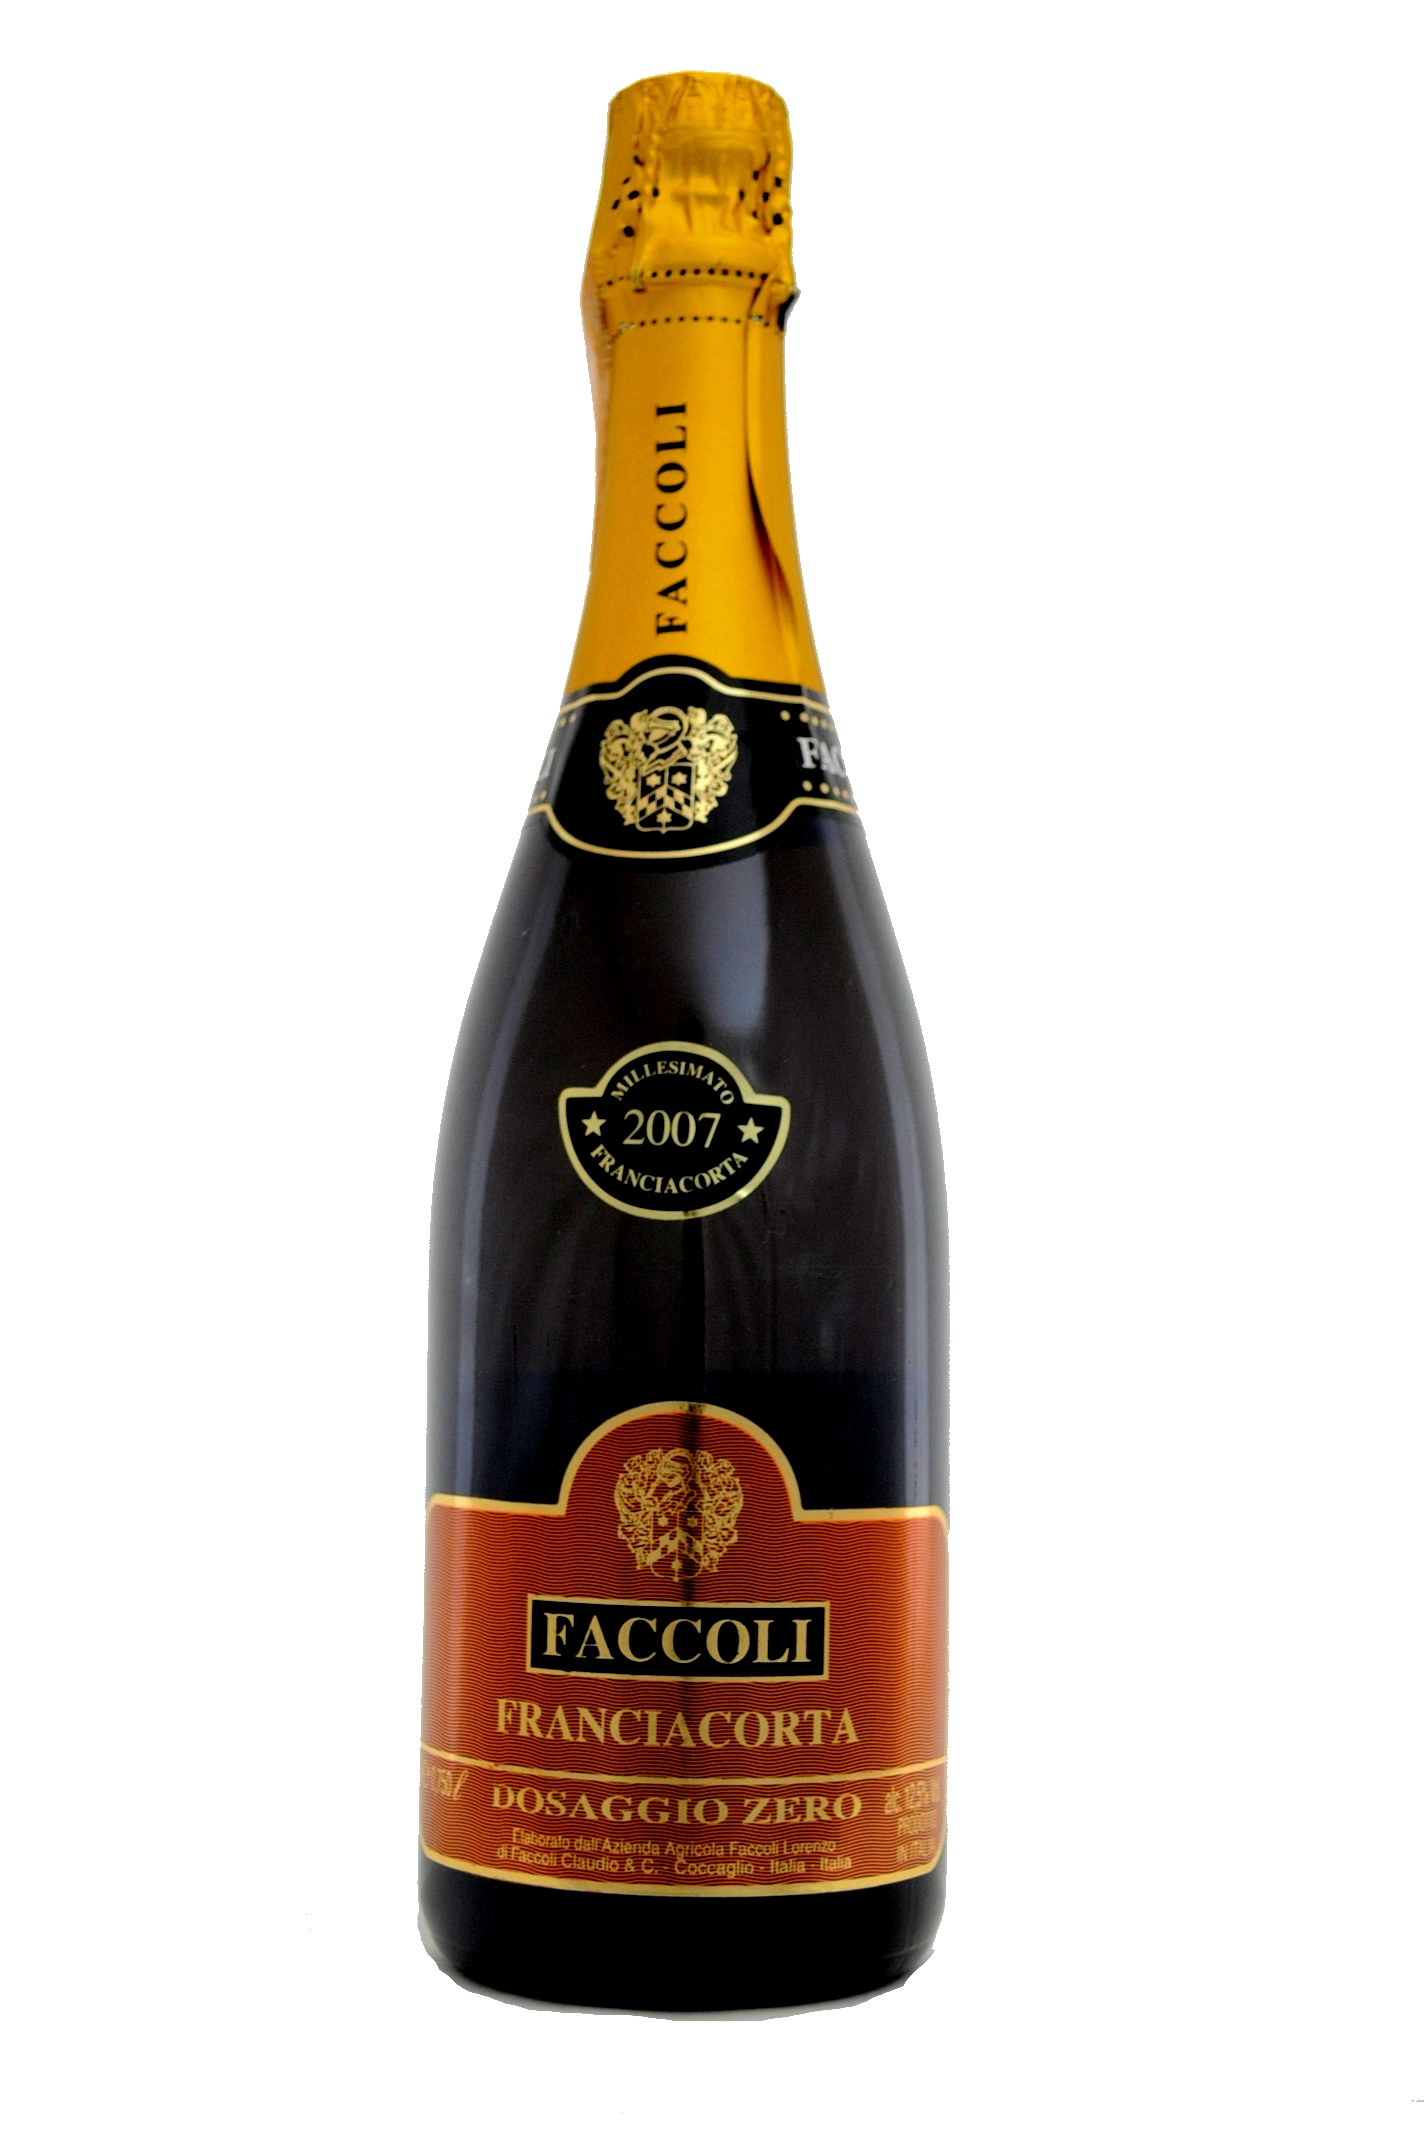 Franciacorta Dosage Zero Faccoli 2011